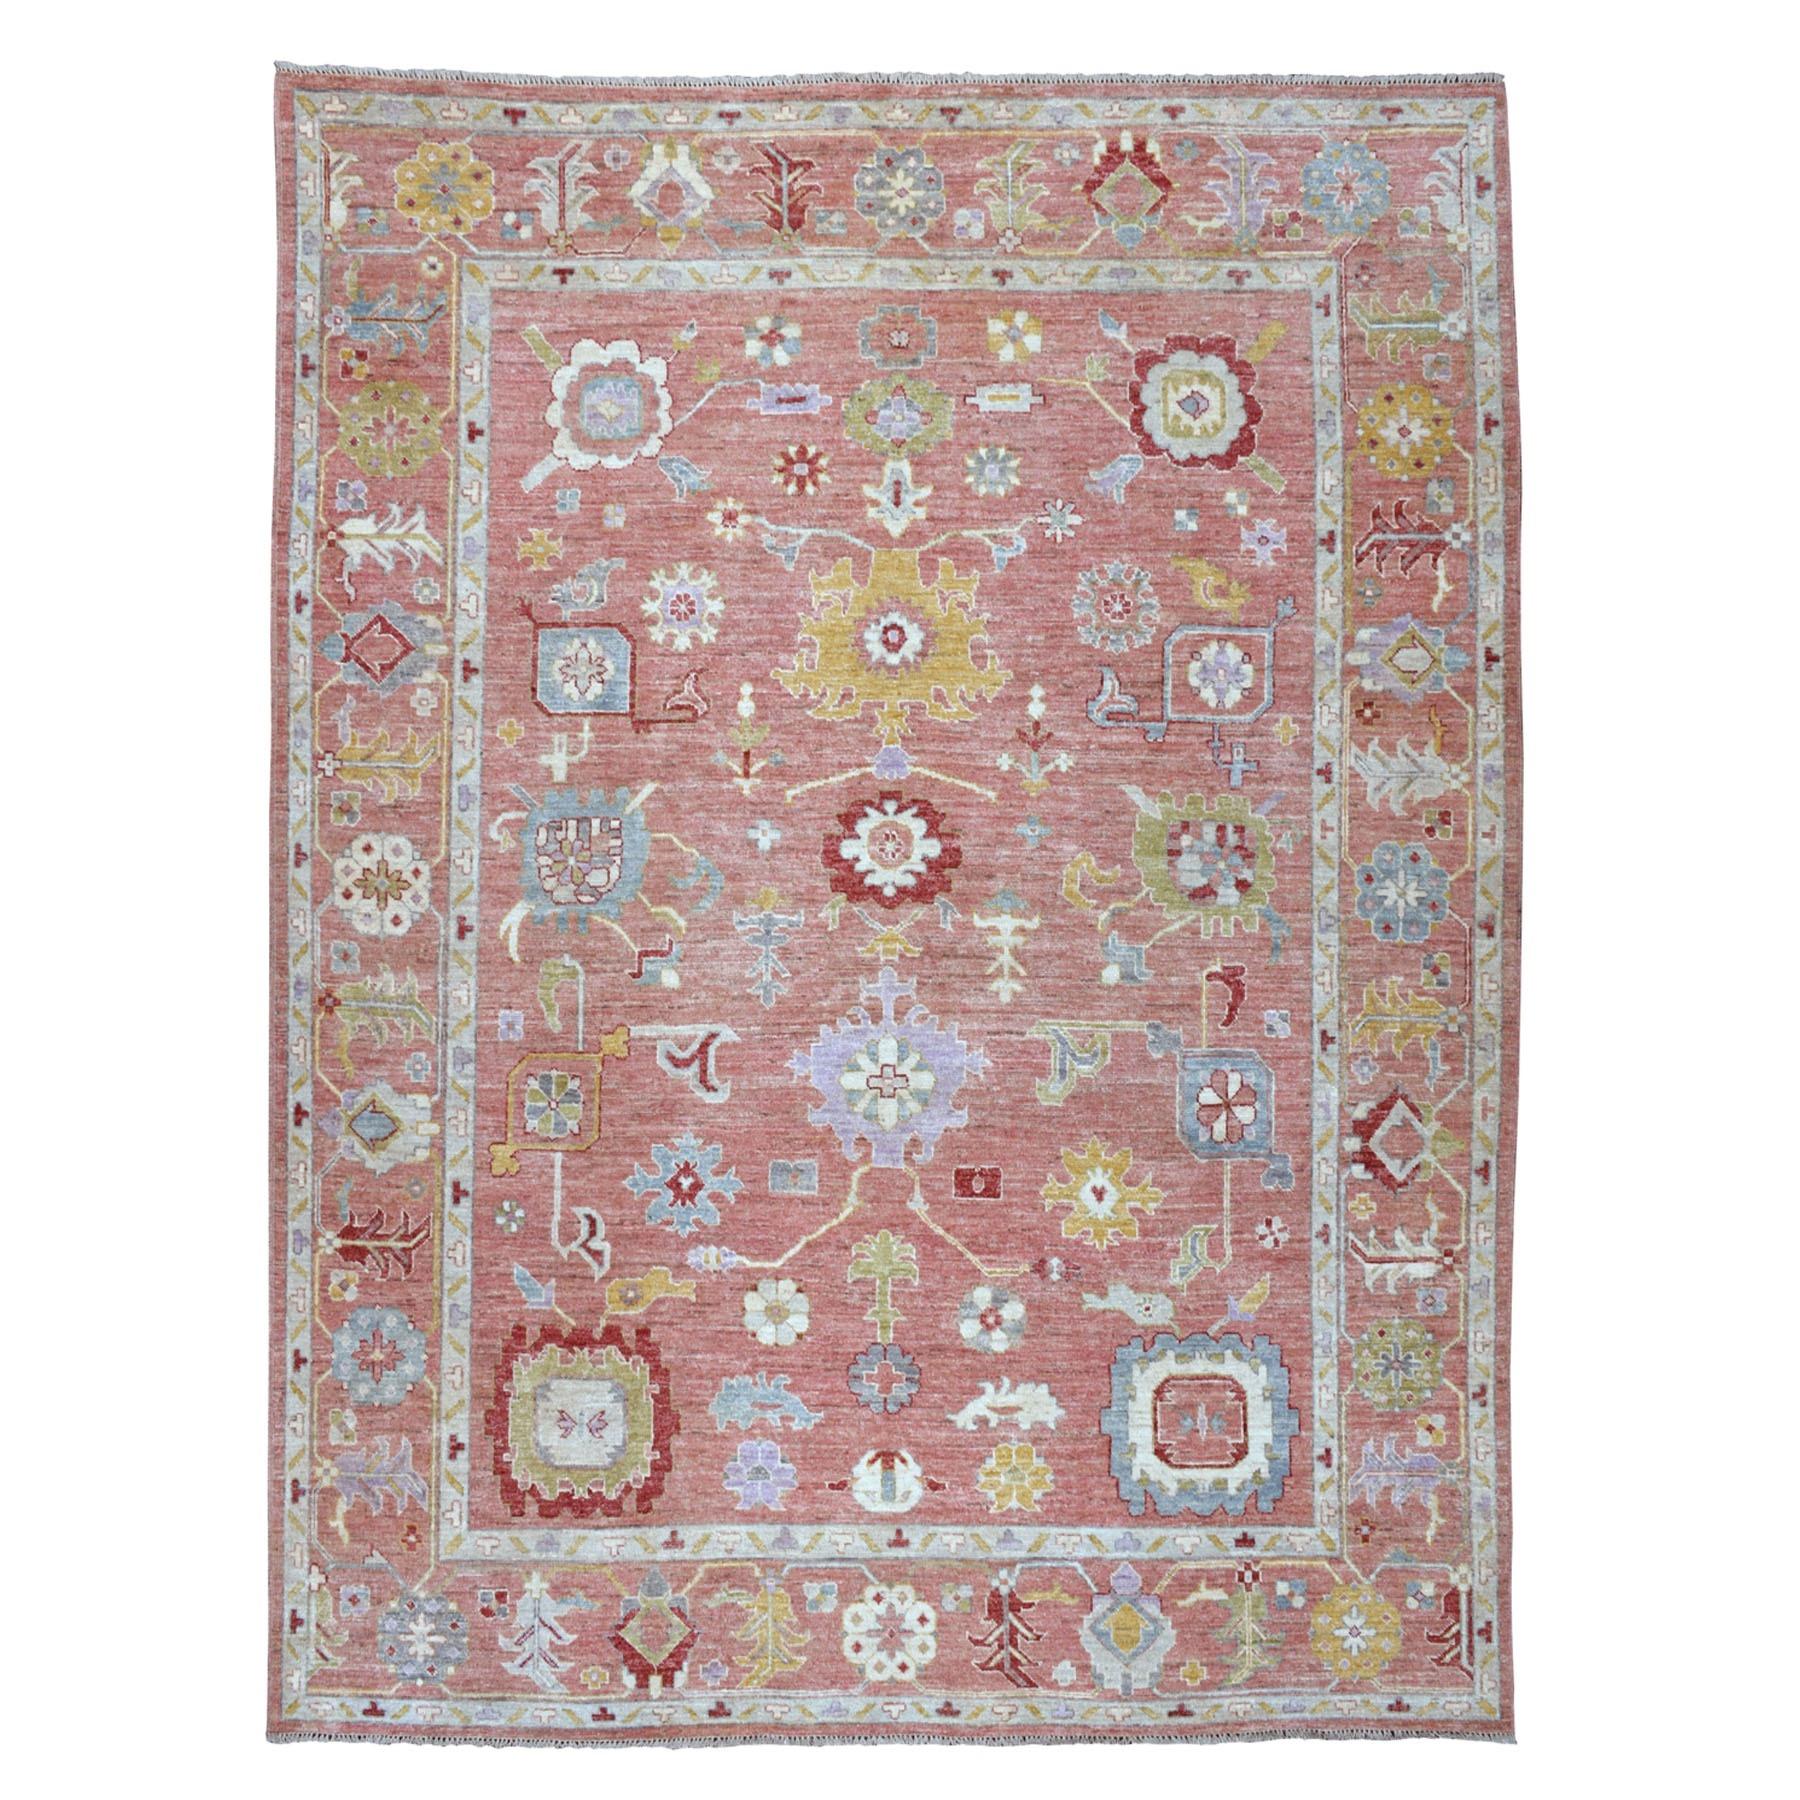 Details About 8 10 X11 Coral Angora Oushak Pure Wool Hand Knotted Oriental Rug G52491